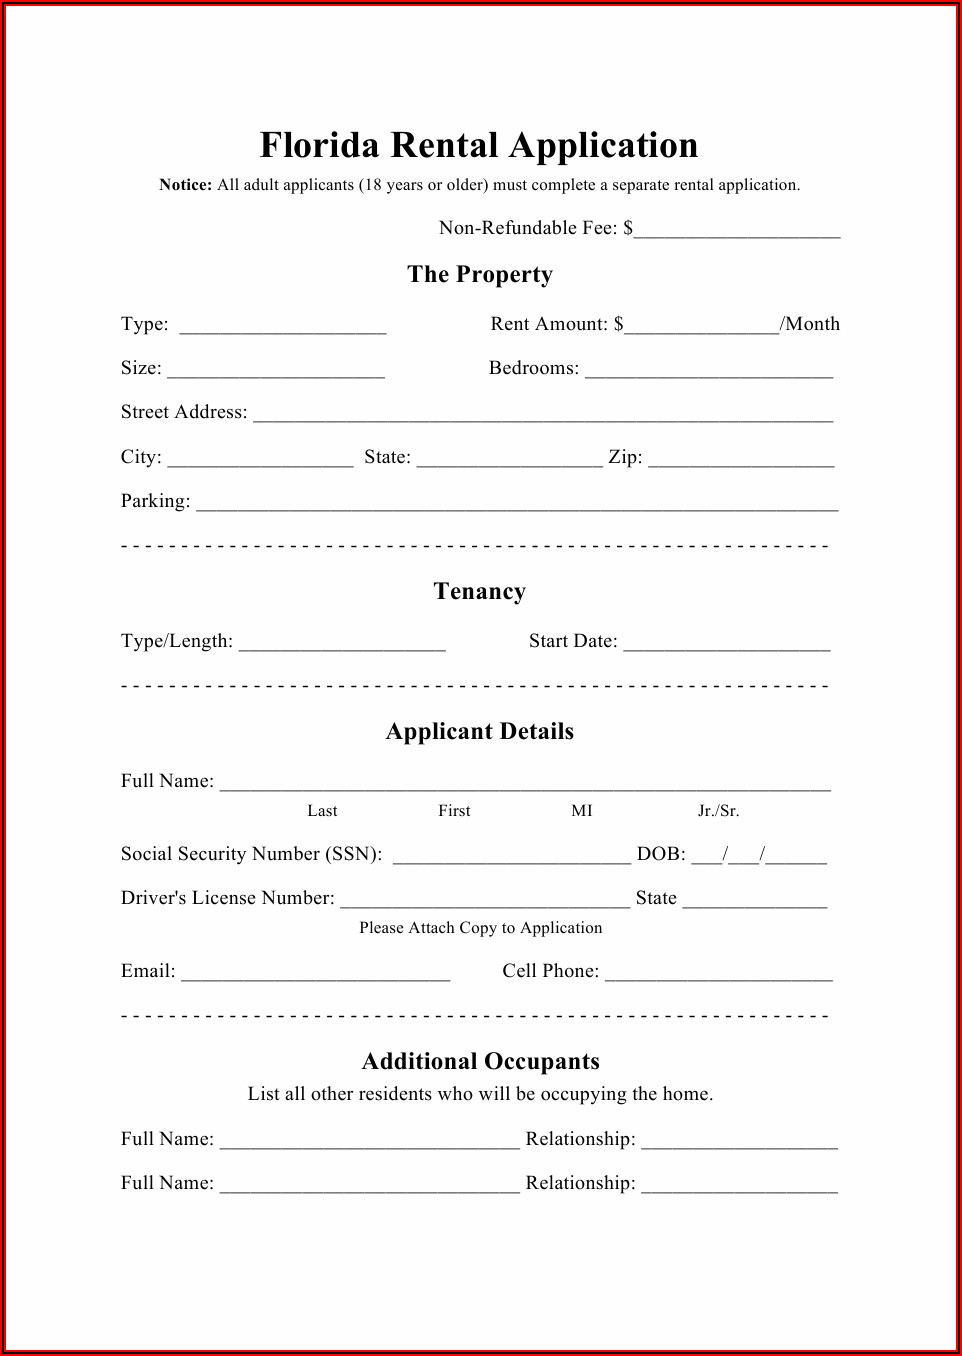 Home Rental Application Forms